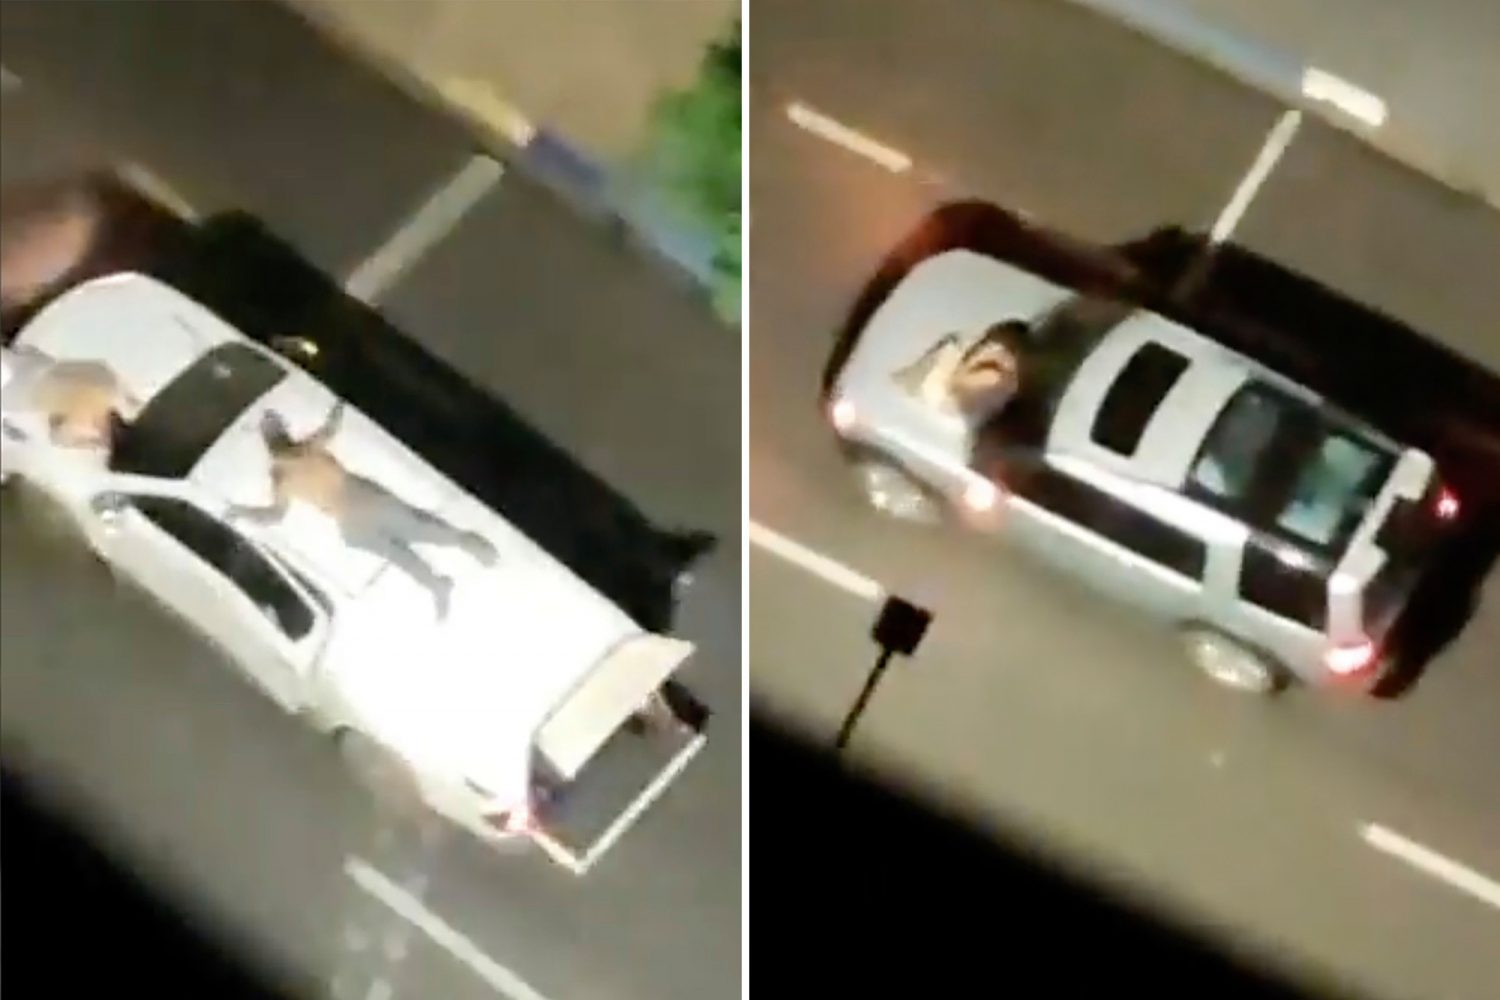 Hostages Used As Human Shields Tied To Car Roofs In Terrifying Bank Robbery Getaway